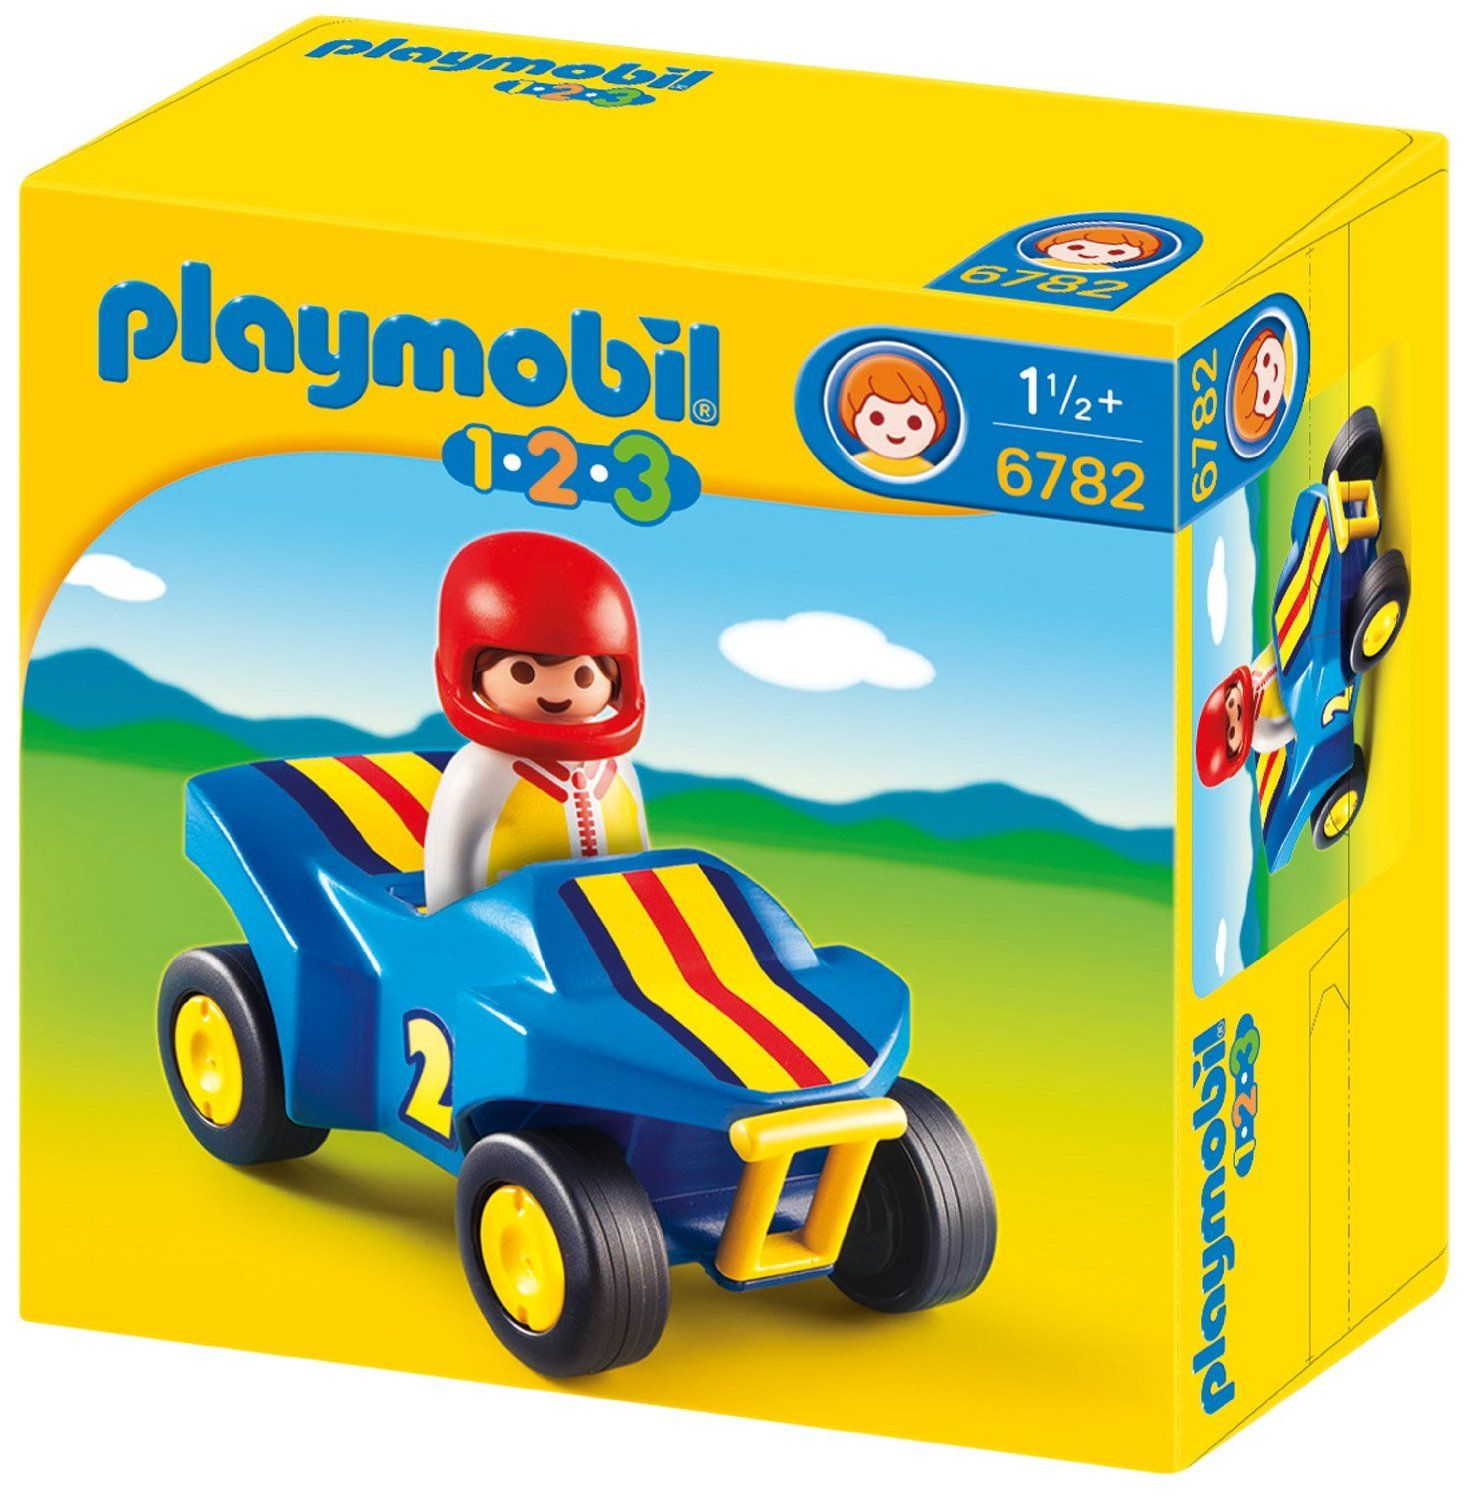 Playmobil 1.2.3 - Quad